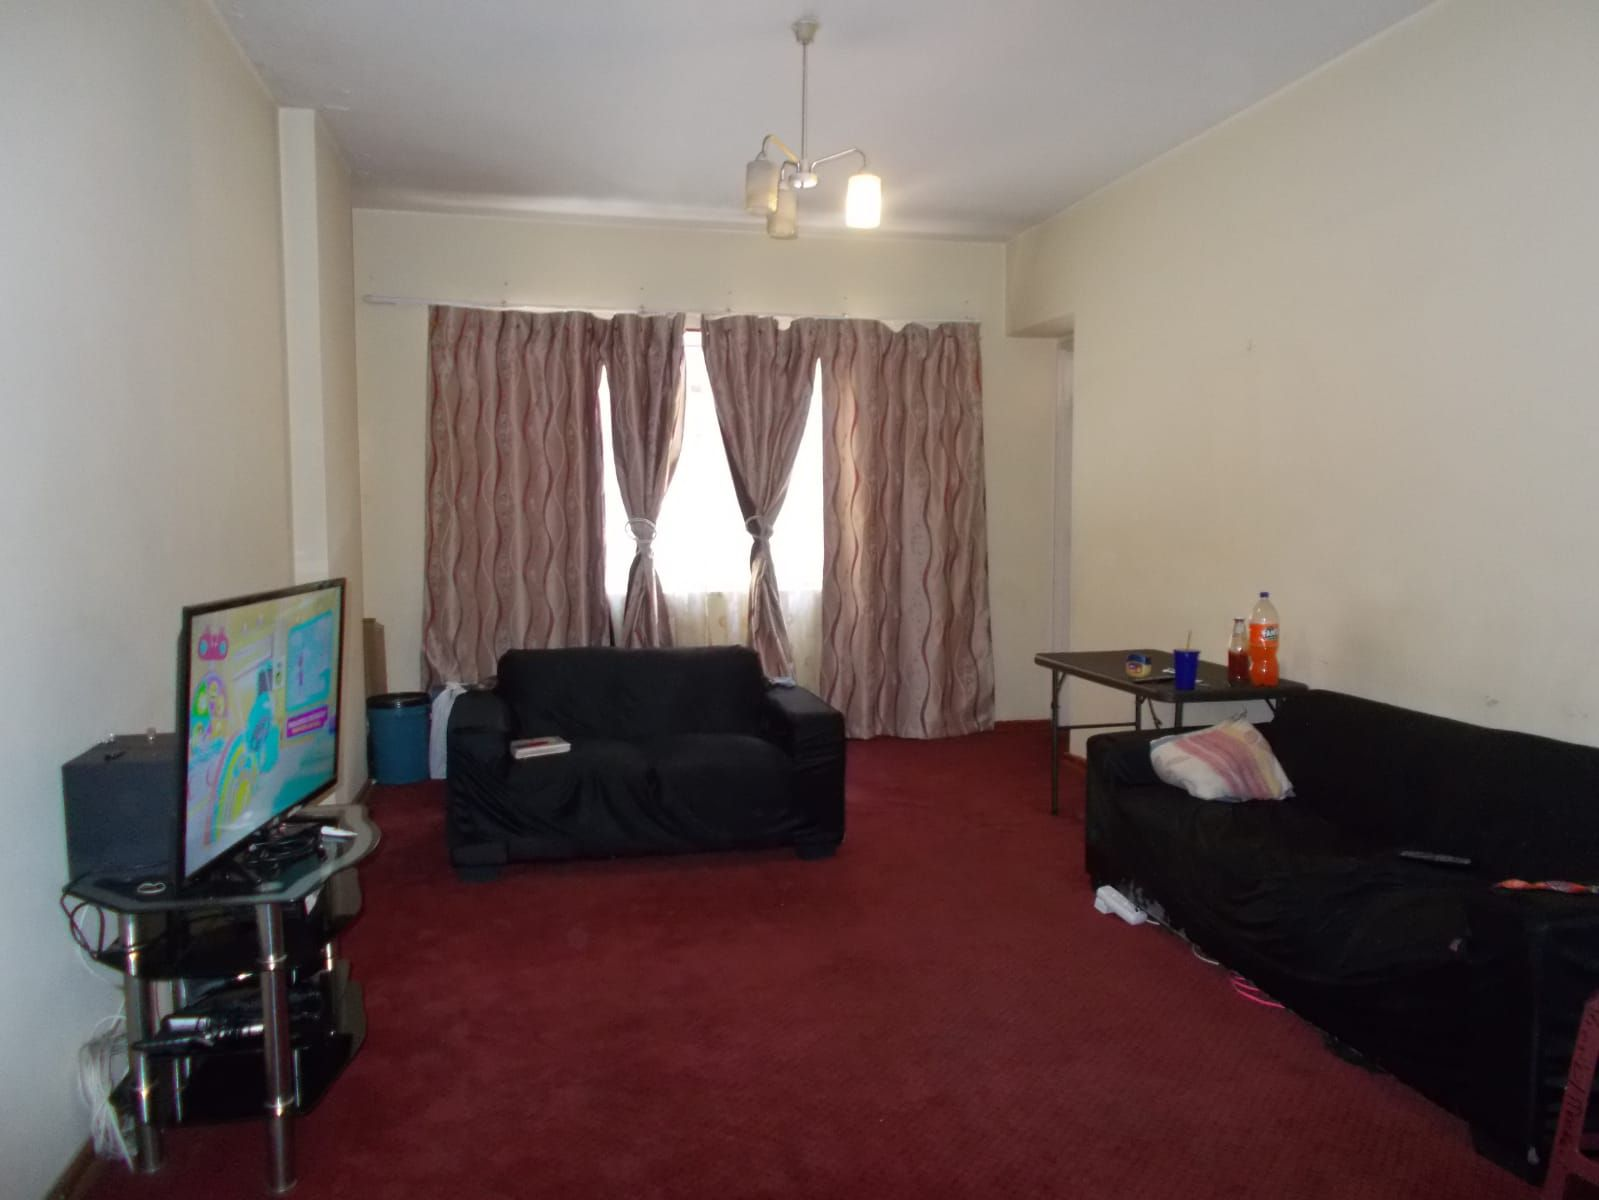 Apartment in Hillbrow - WhatsApp Image 2021-01-12 at 13.03.09 (1).jpeg